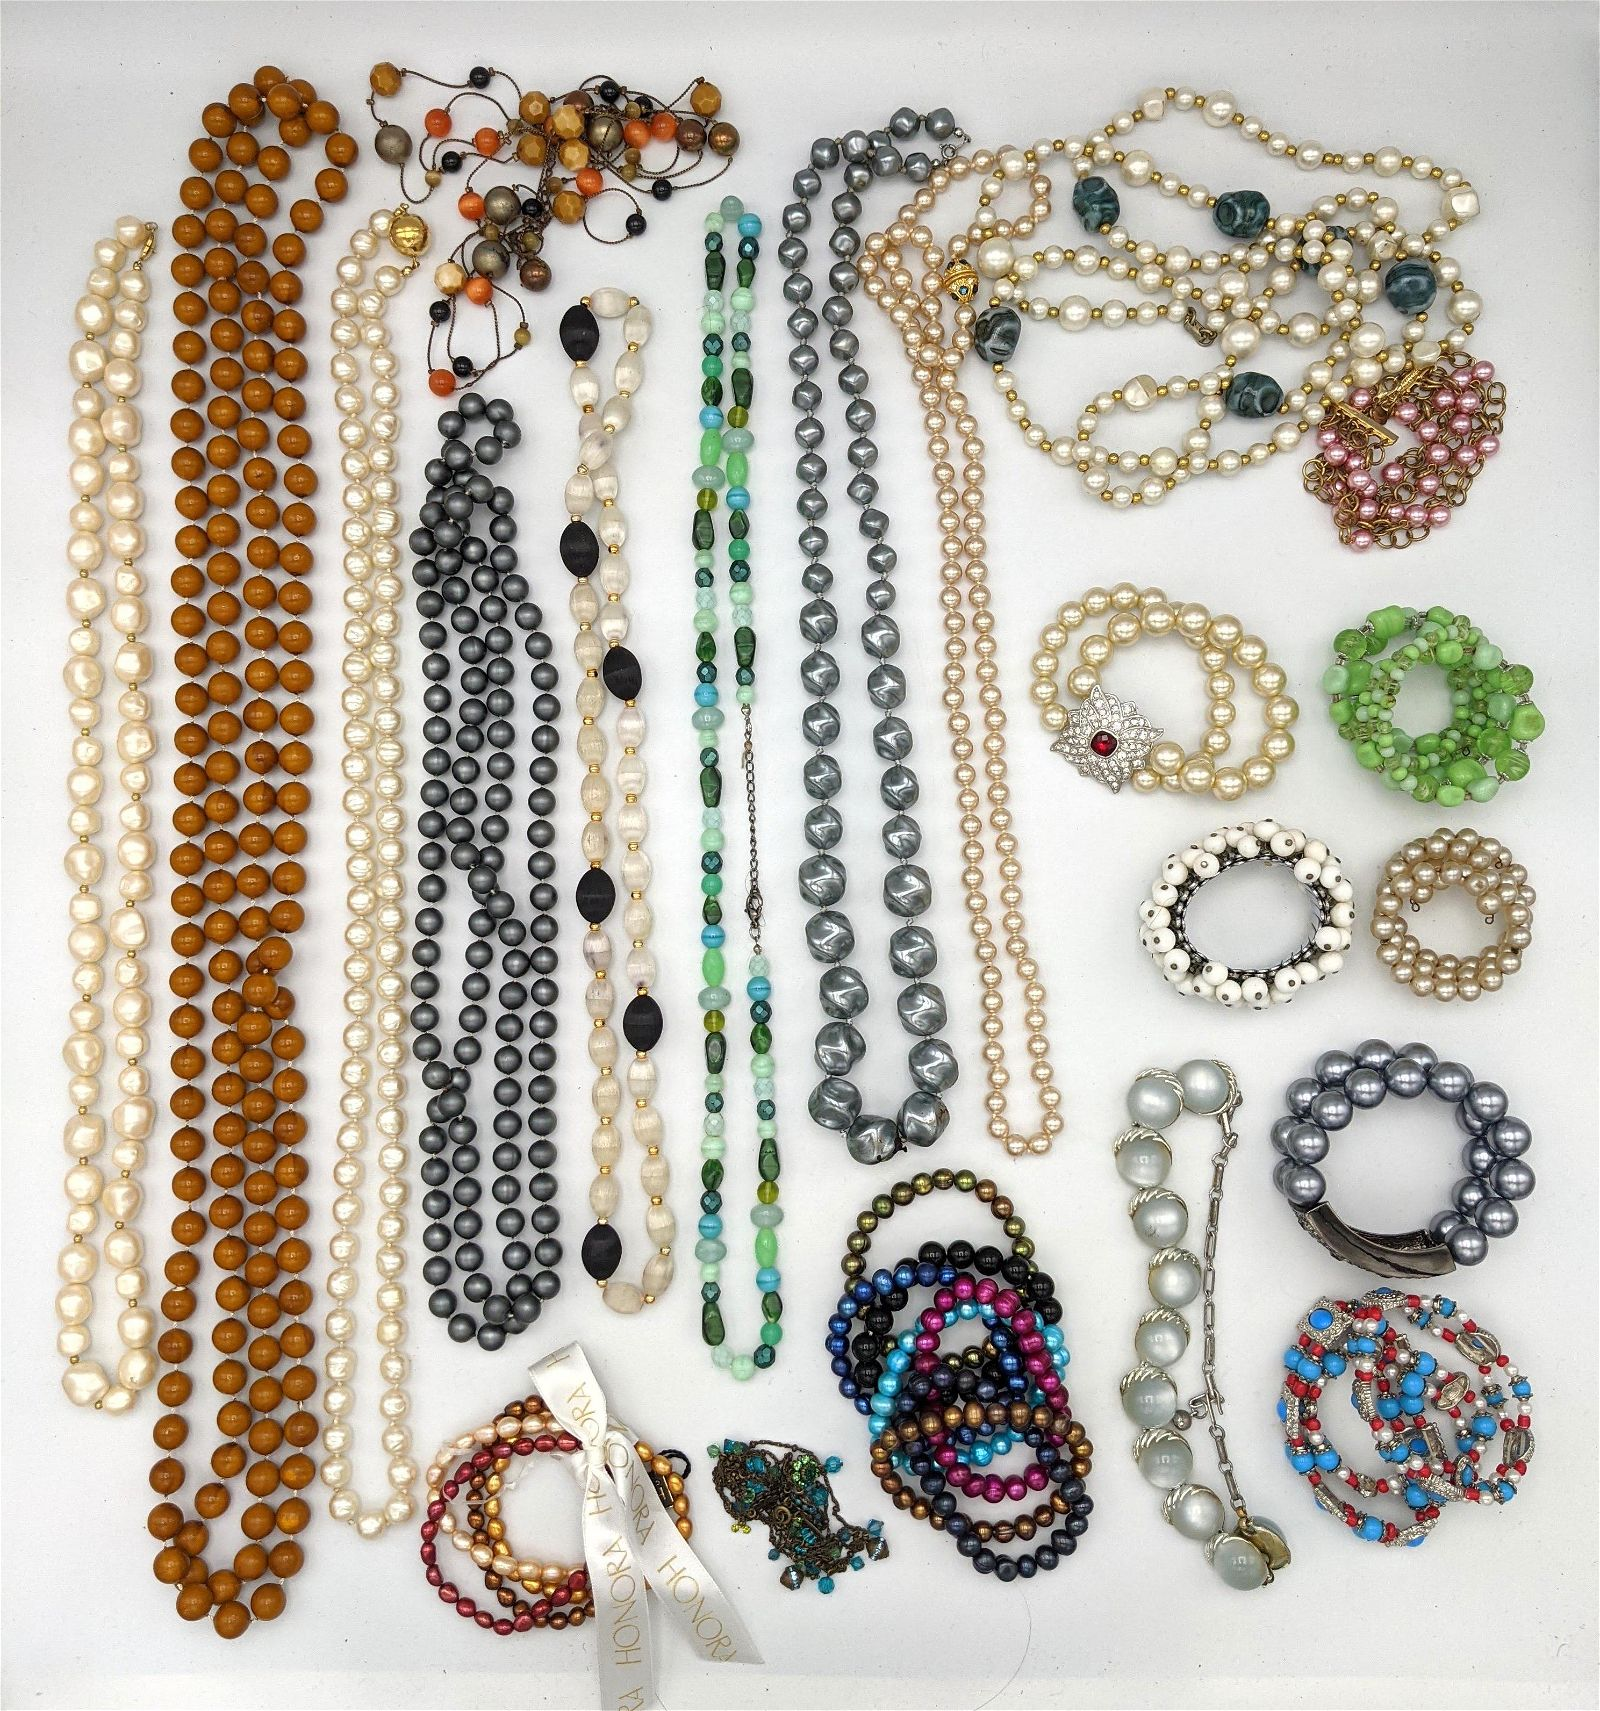 Collection of Costume Jewelry Necklaces Bracelets. Some